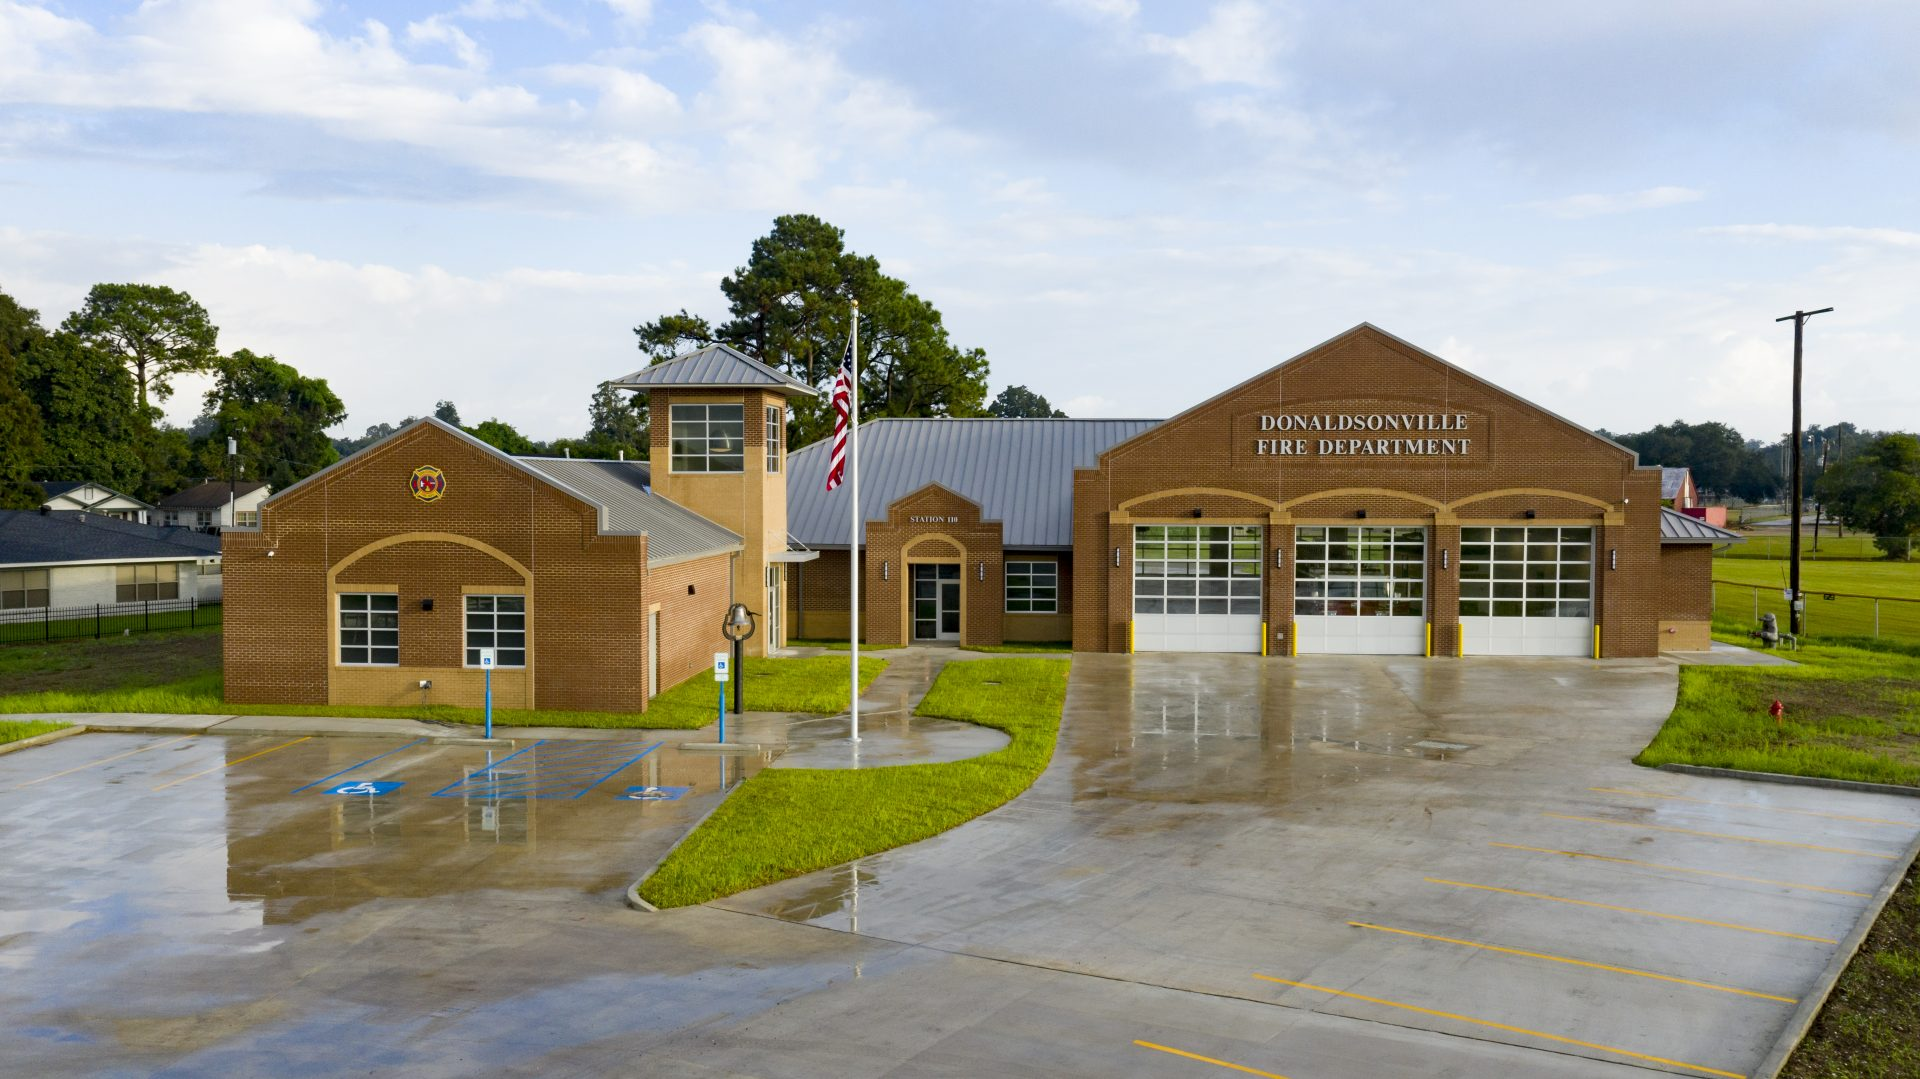 Exterior of the Donaldsonville Fire Station including the parking lot.